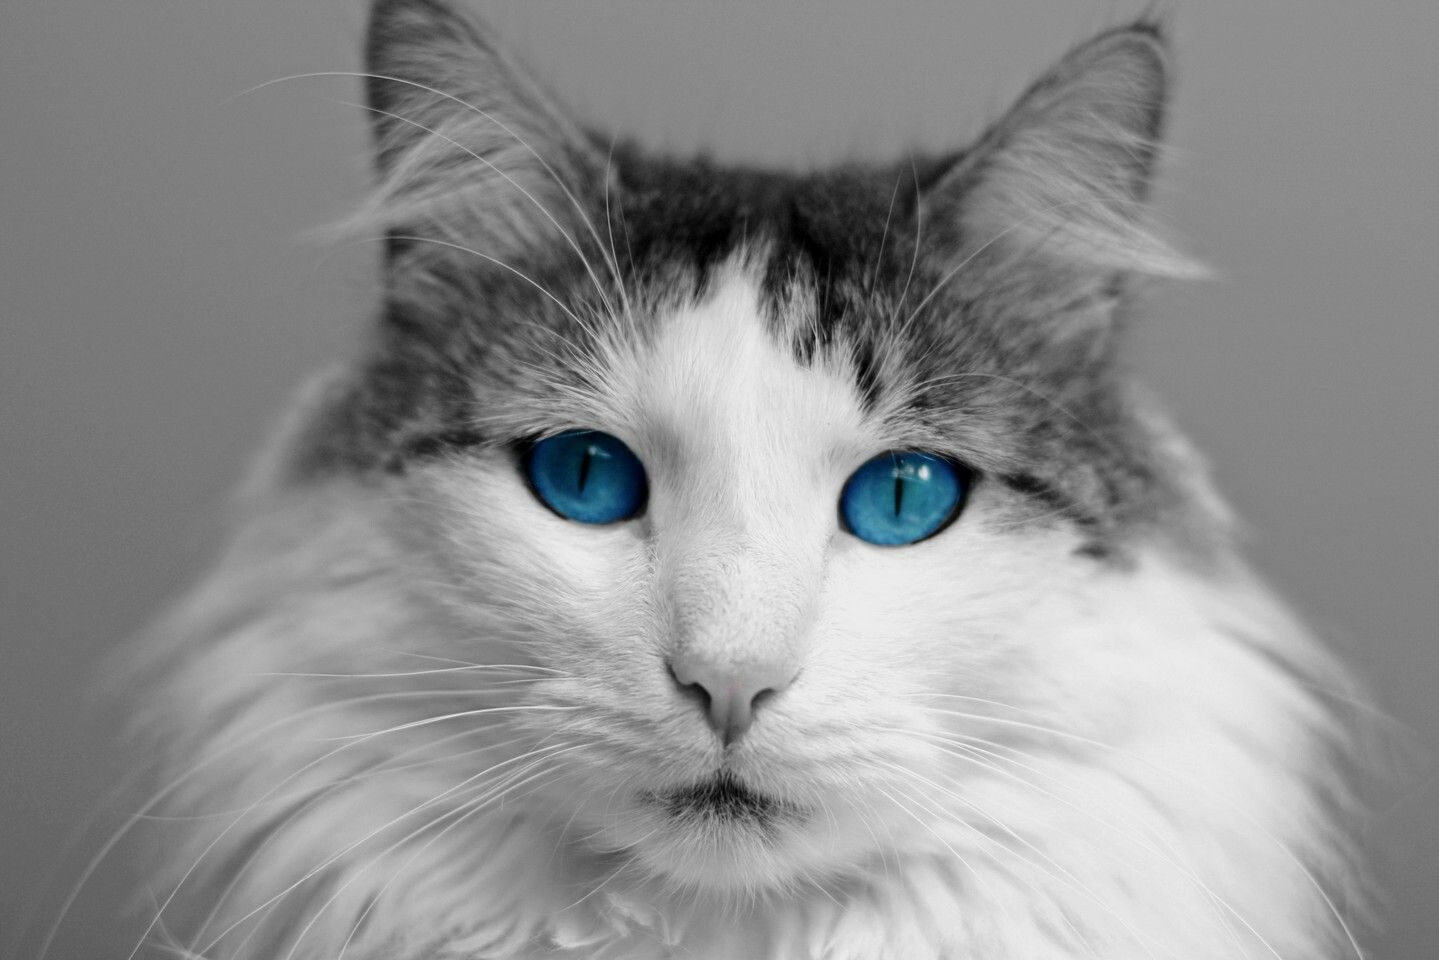 Pin by Gledisa Rr on Animals Cat with blue eyes, Cats